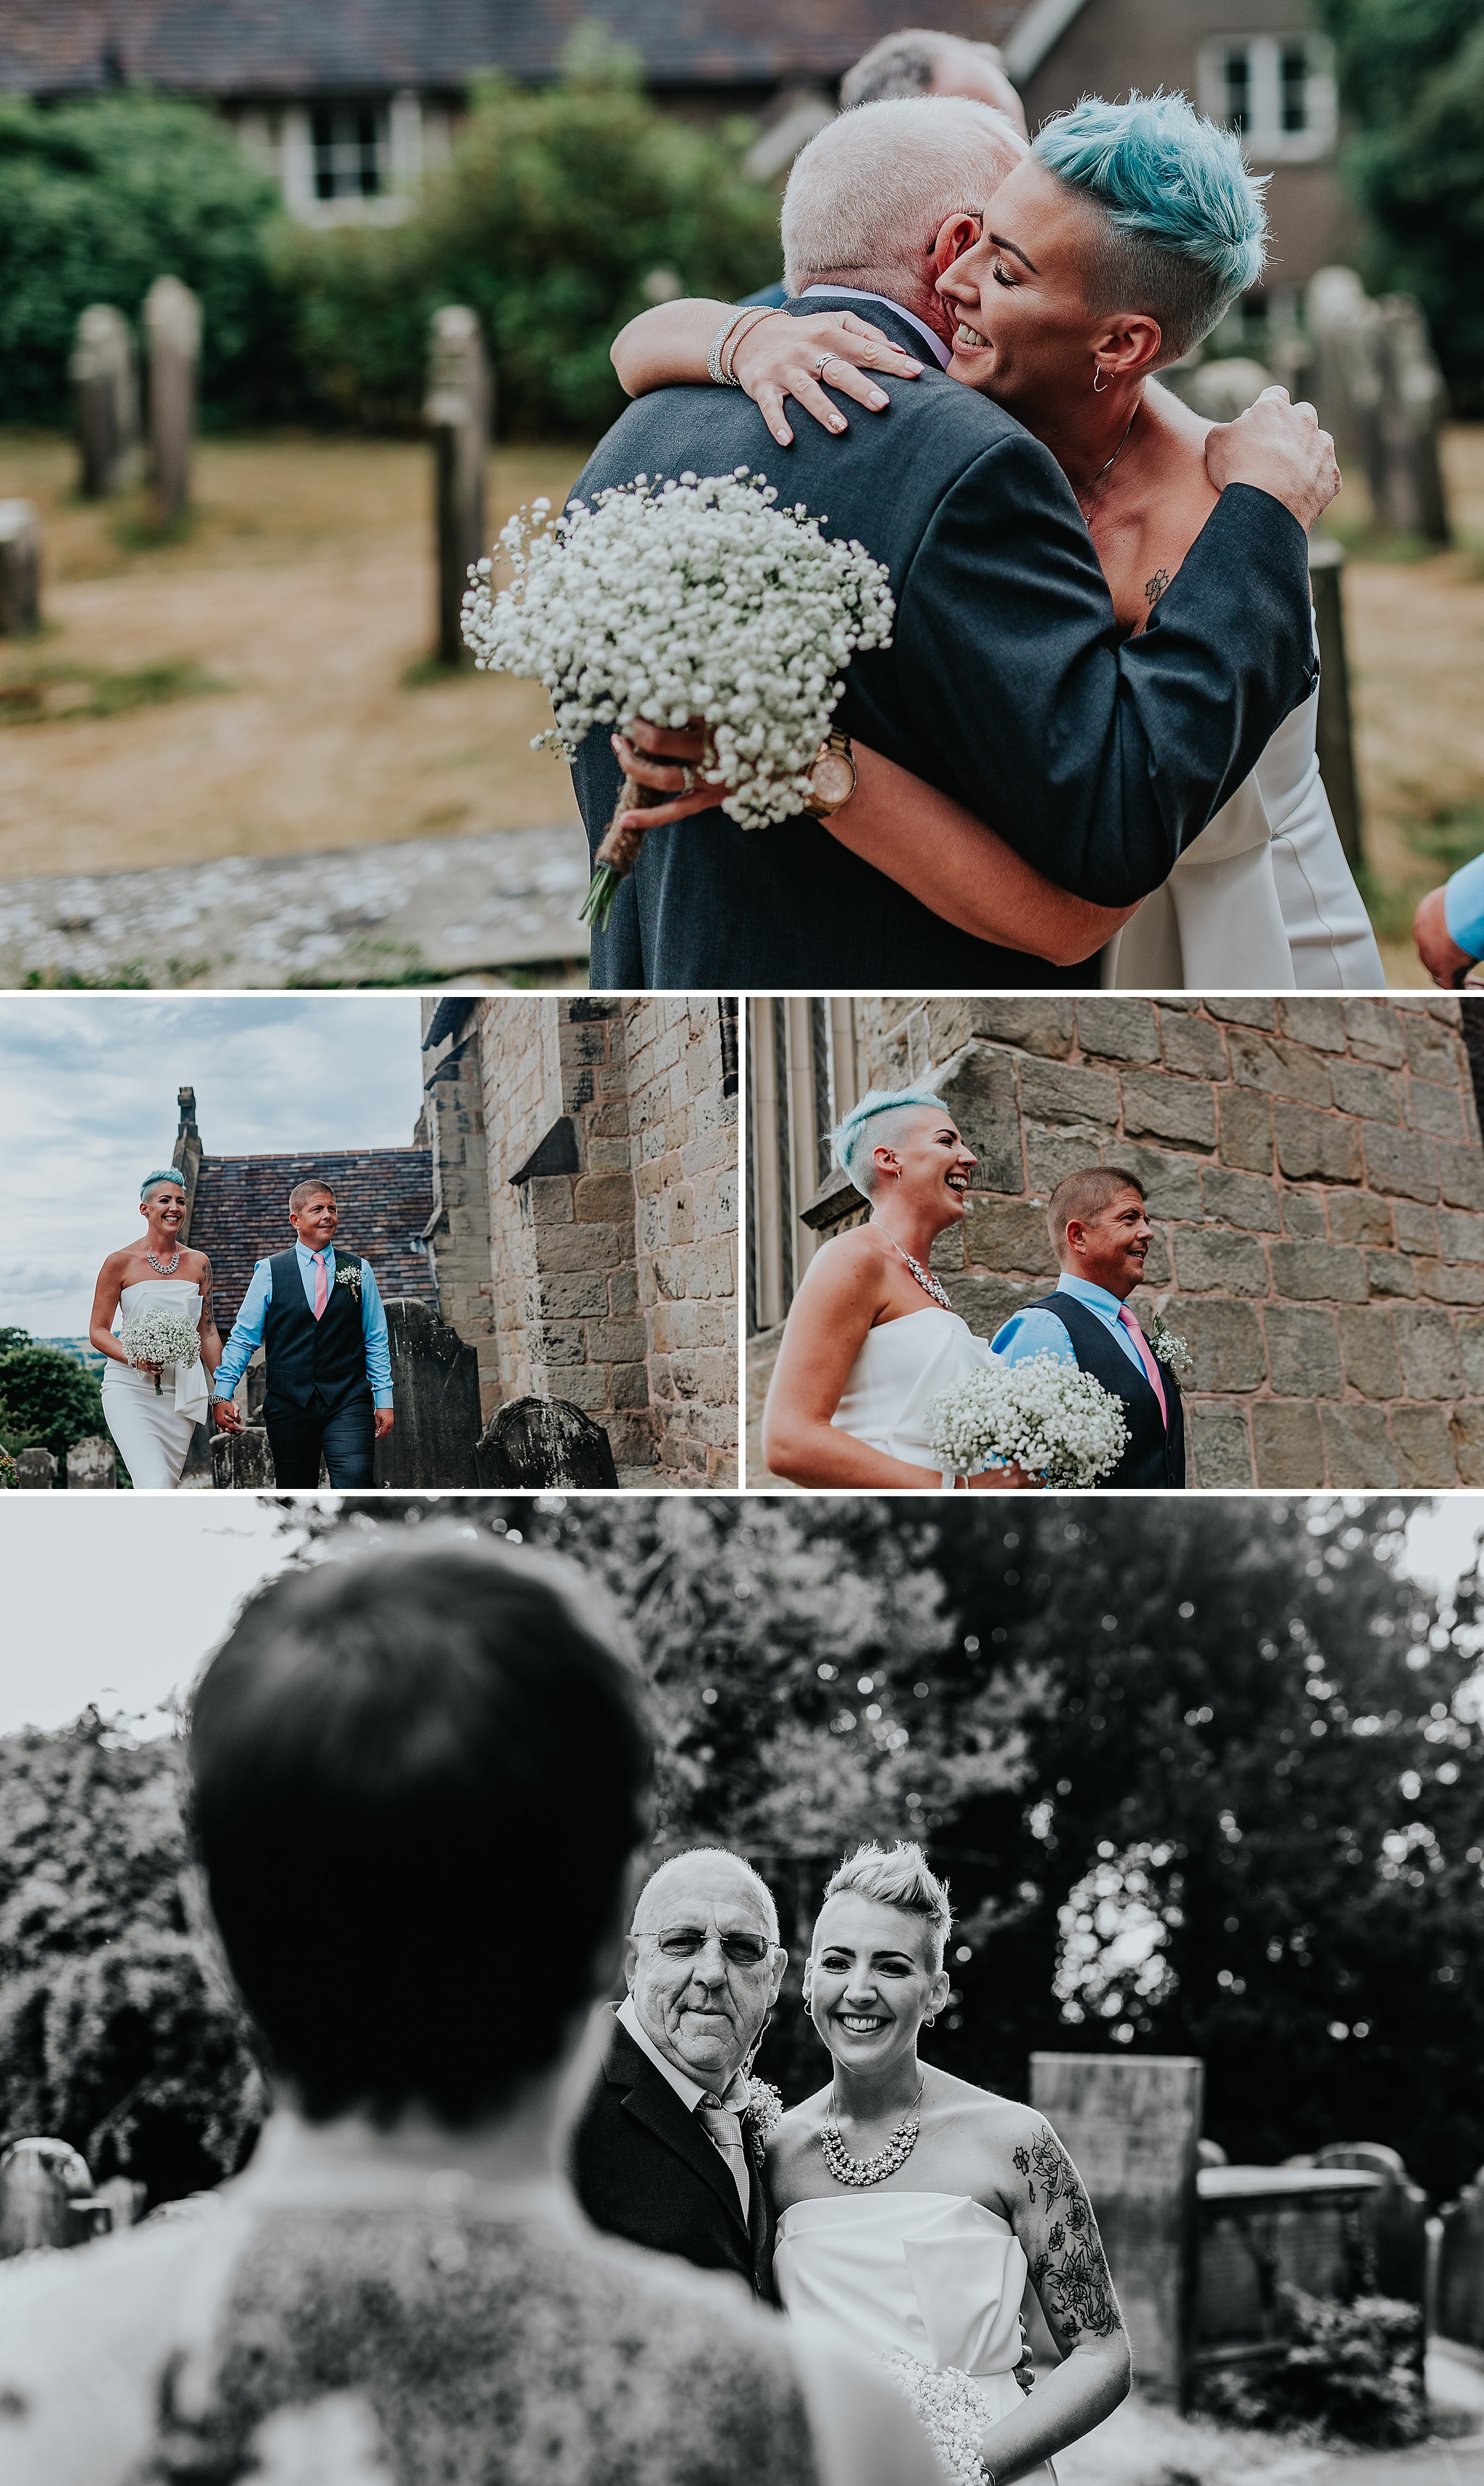 Documentary wedding photographer Staffordshire